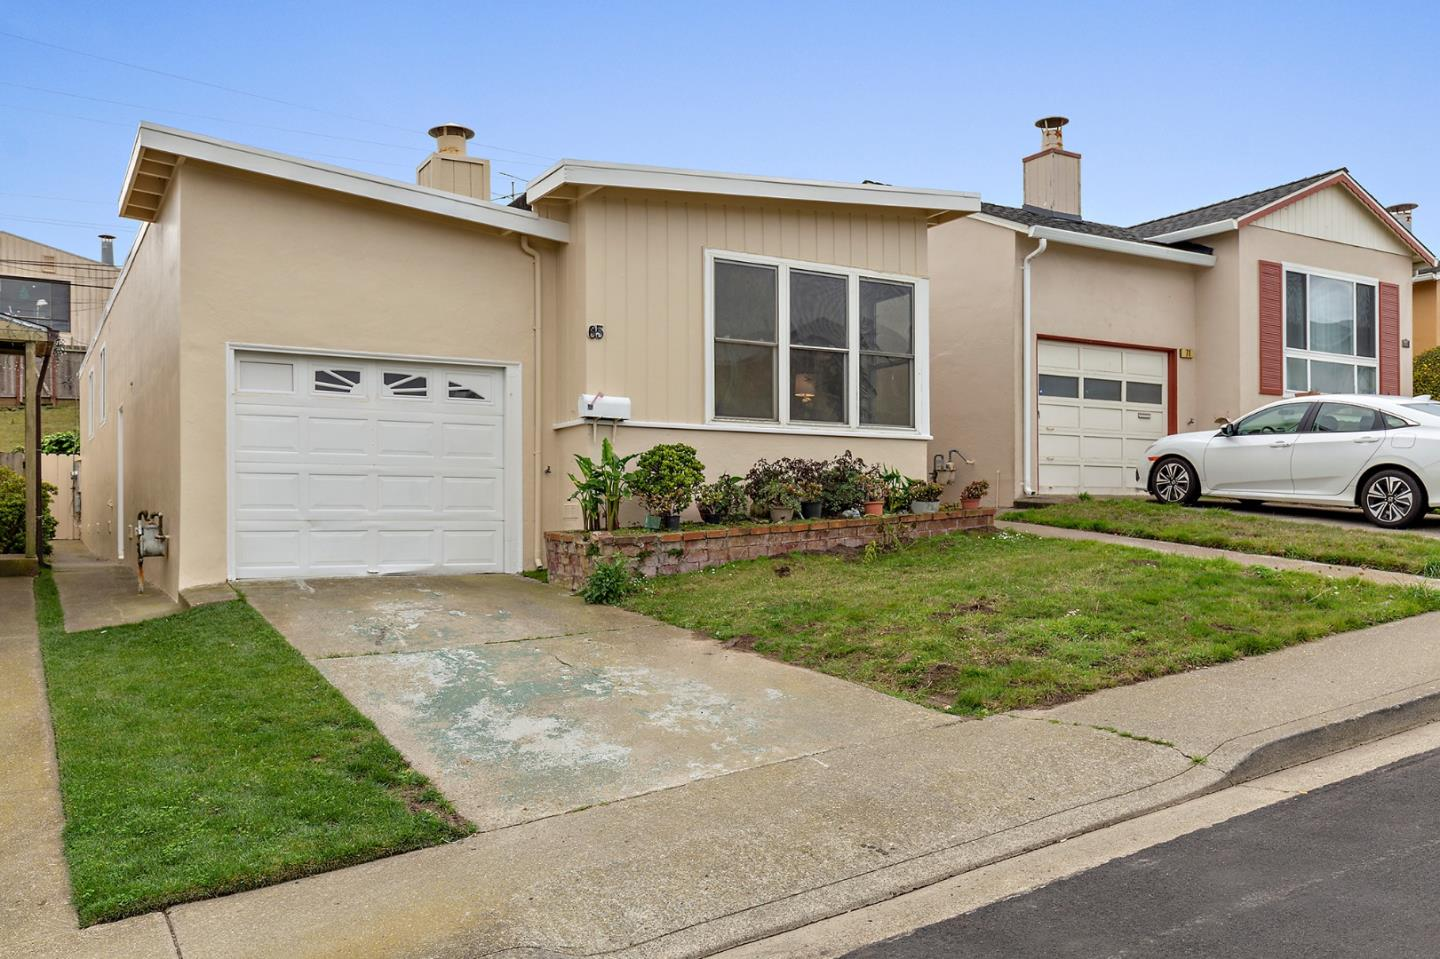 65 Shelbourne Avenue Daly City, CA 94015 - MLS #: ML81732810